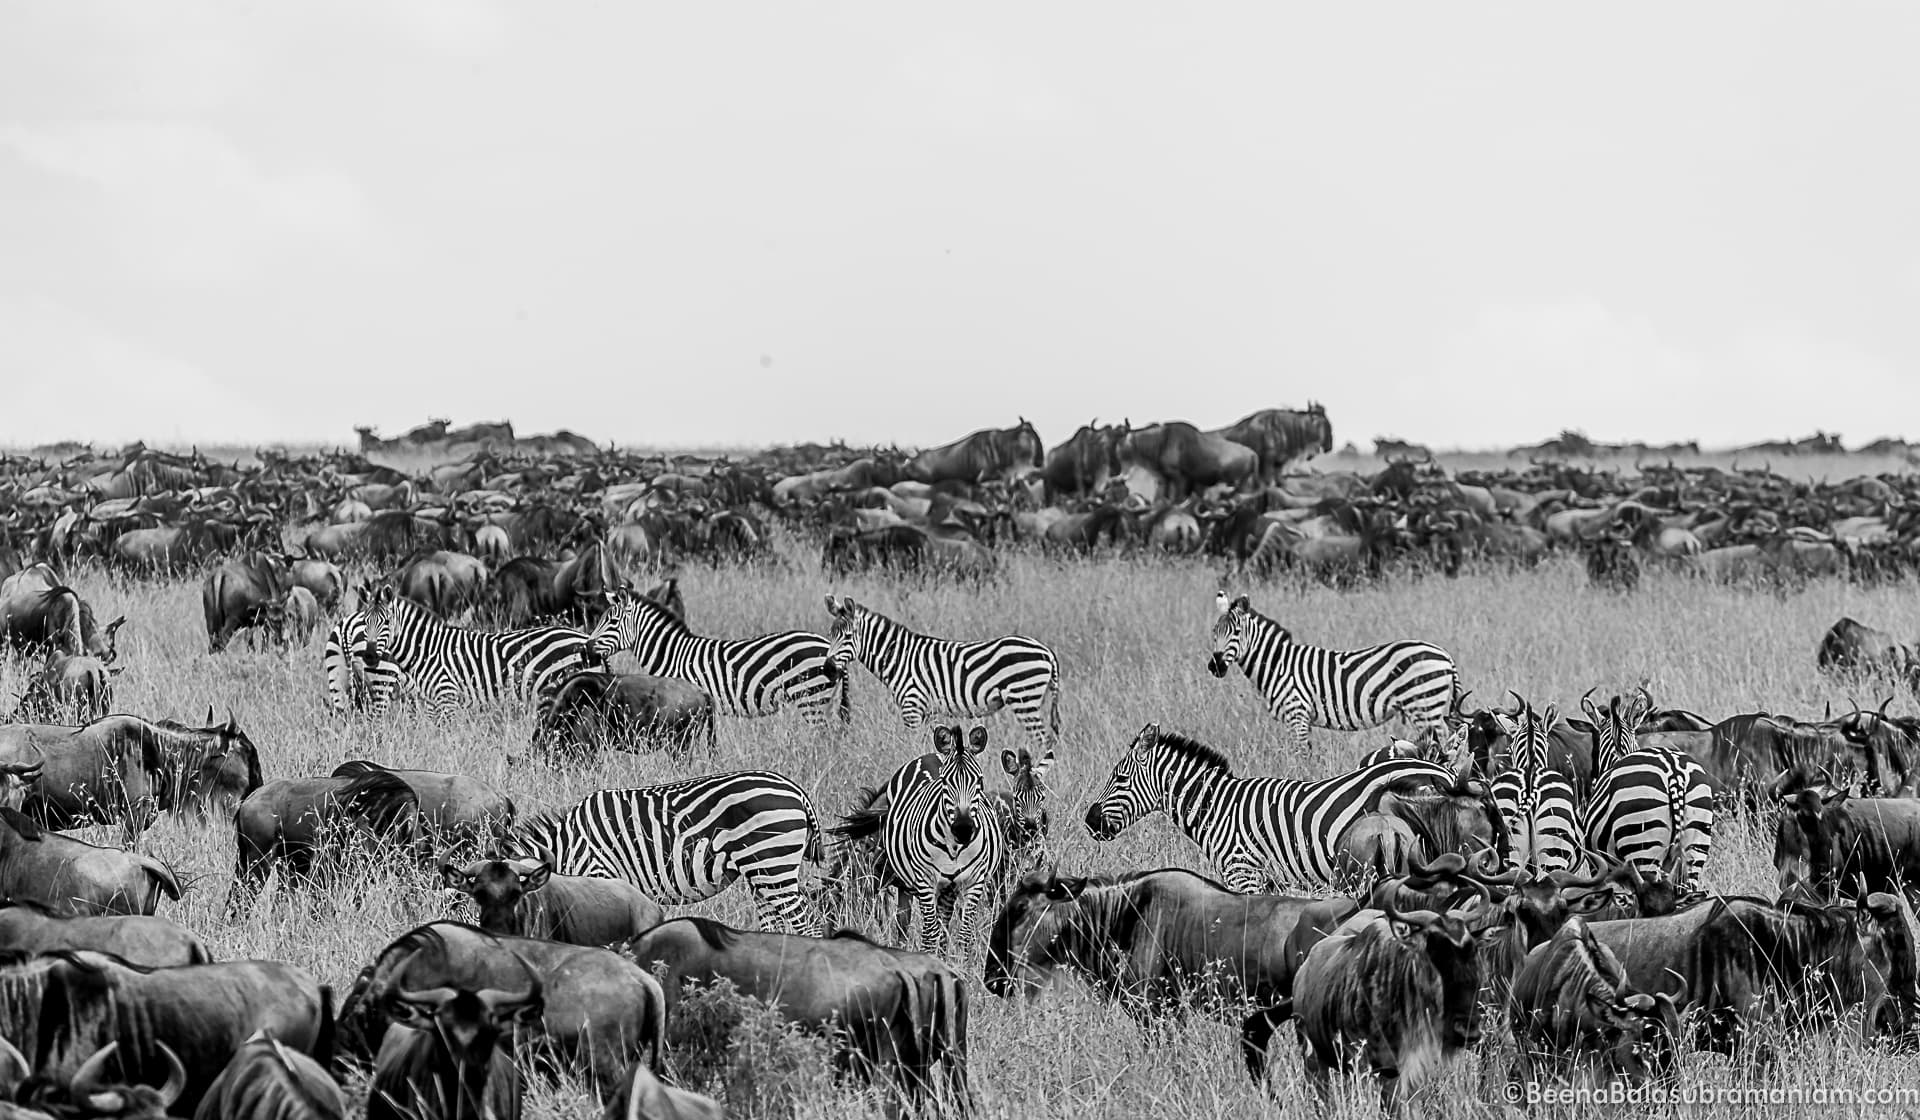 The zebras are prominent in the herds